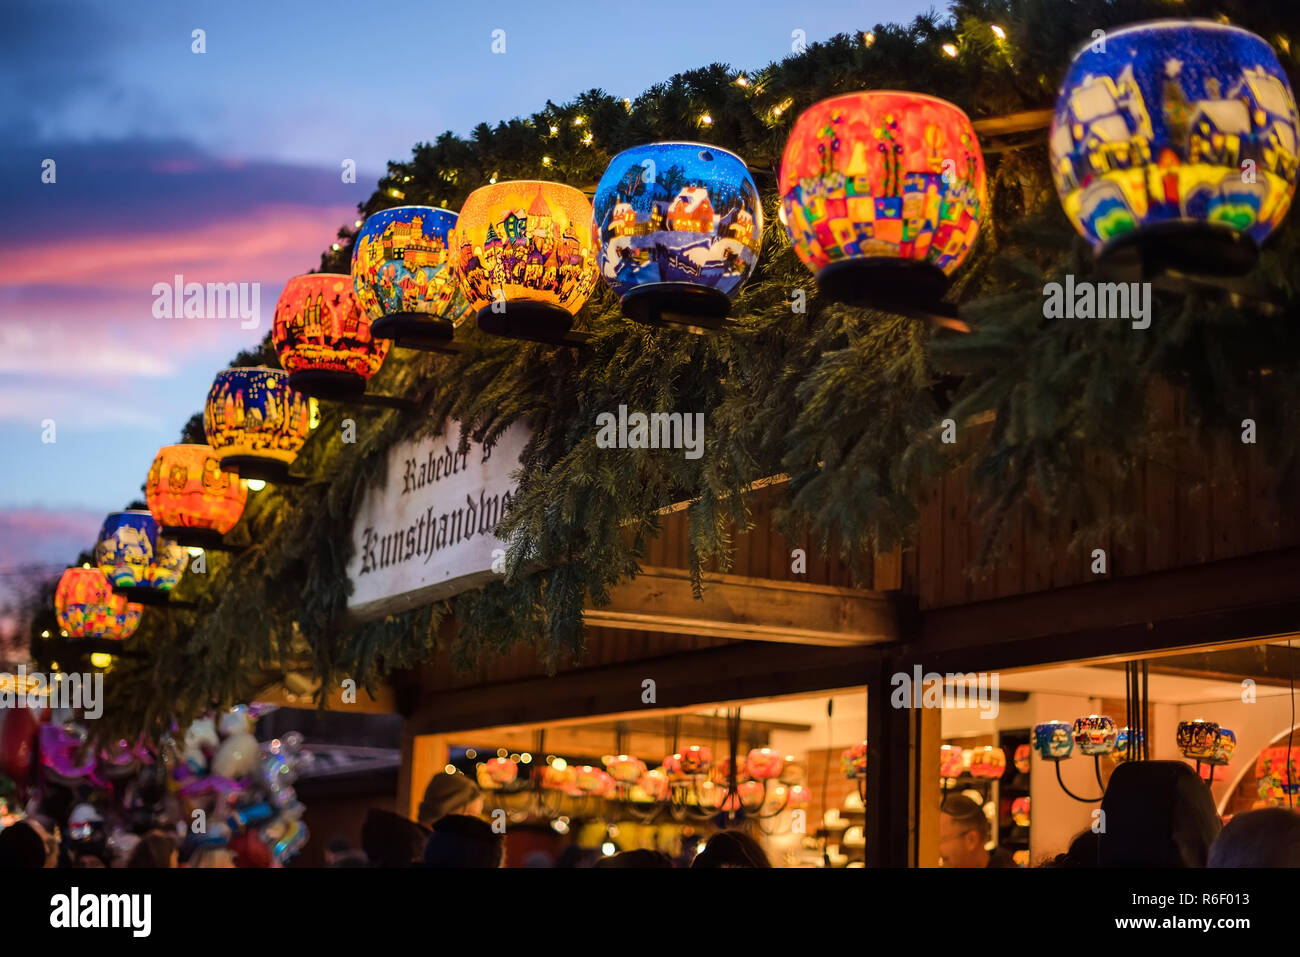 Vienna, Austria - December 24, 2017. Lighting painted glass candle holders with colorful ornaments in kiosk at Viennese Christmas market. Close view o - Stock Image